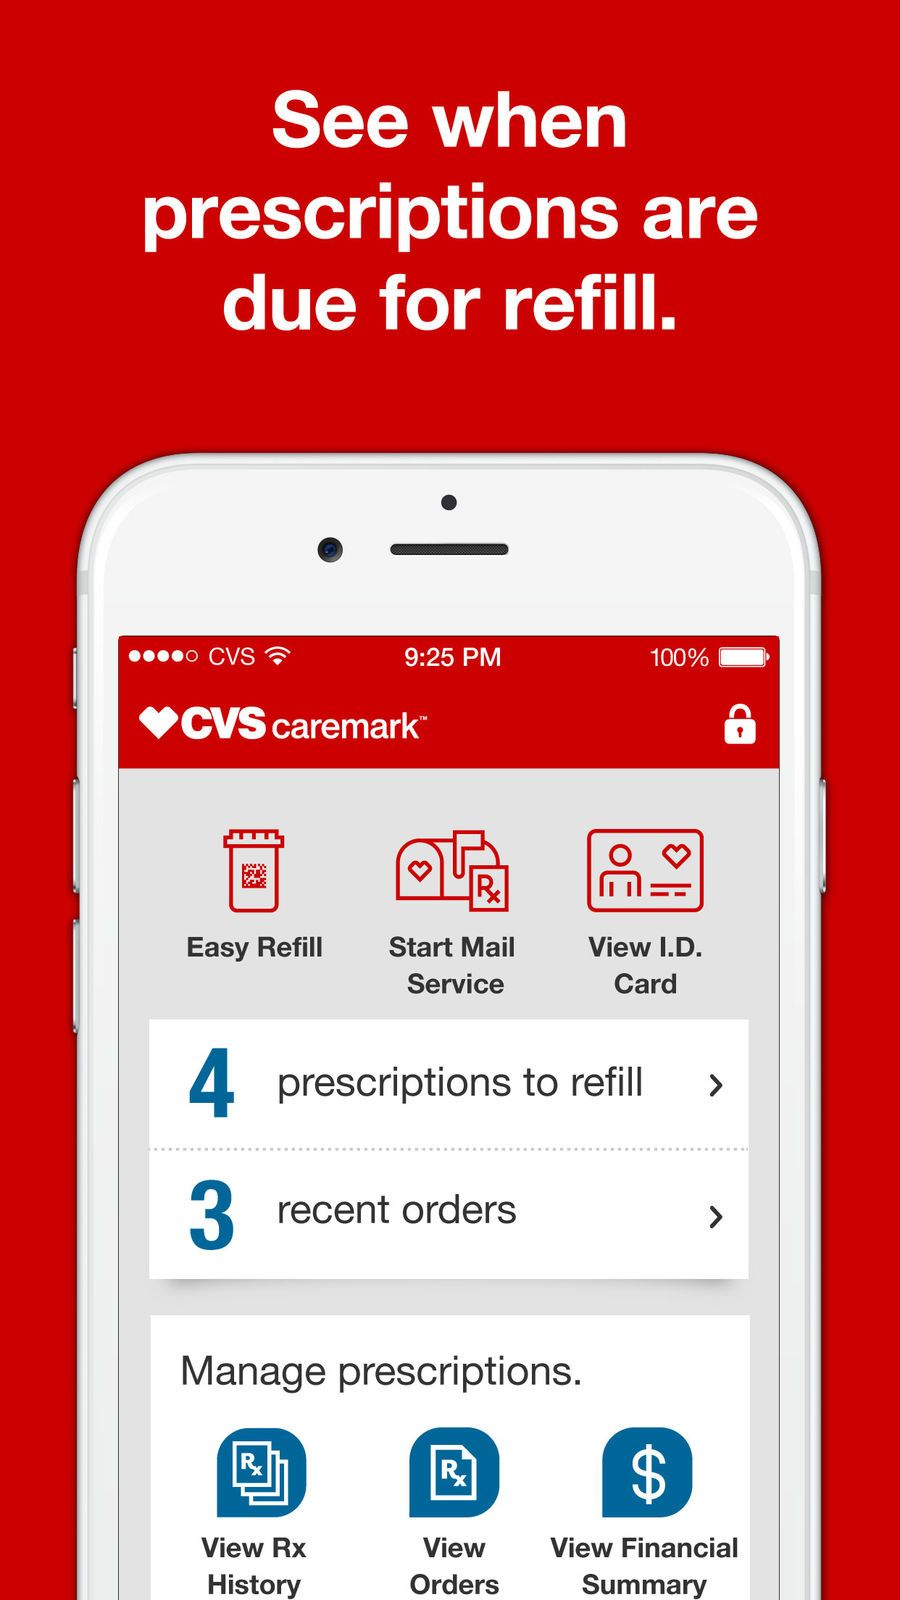 CVS Caremark Fitnessampappsios Cvs, Ios apps, App